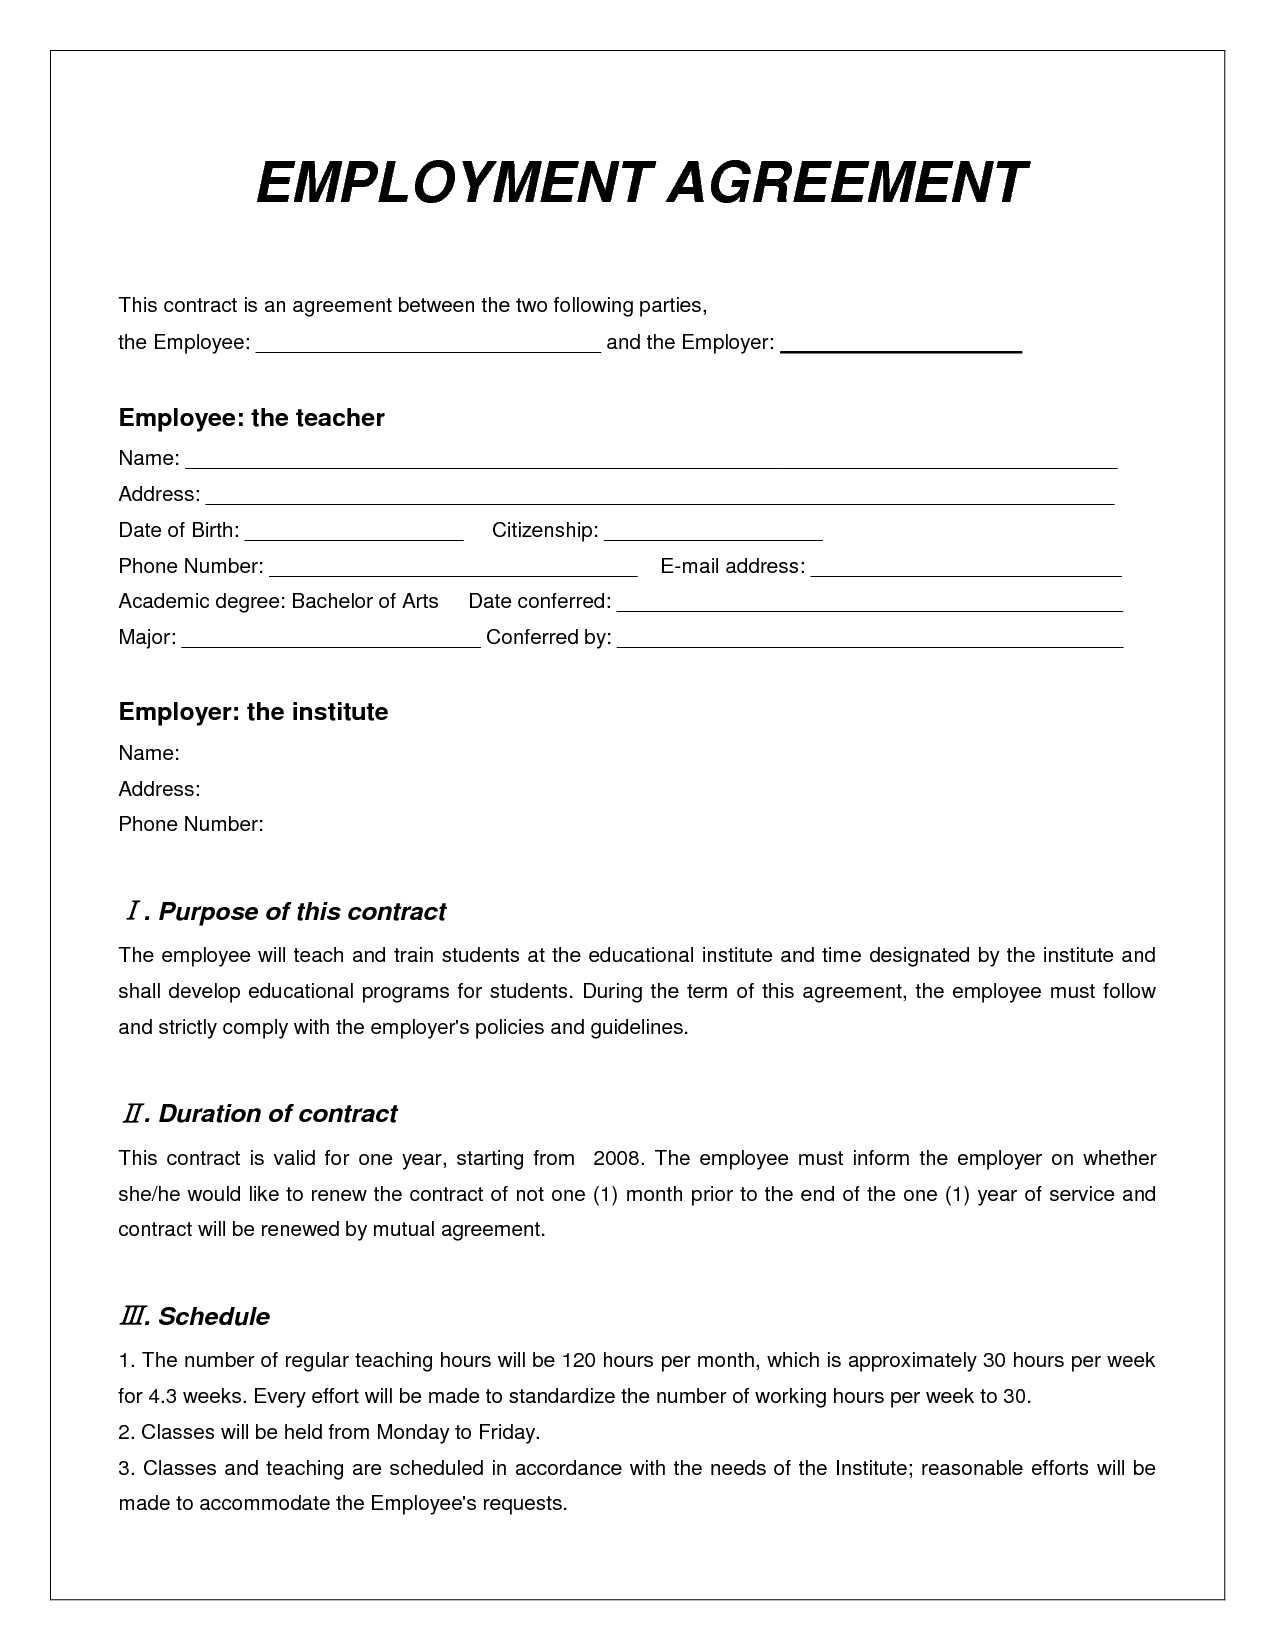 employment contract .rule of law.us